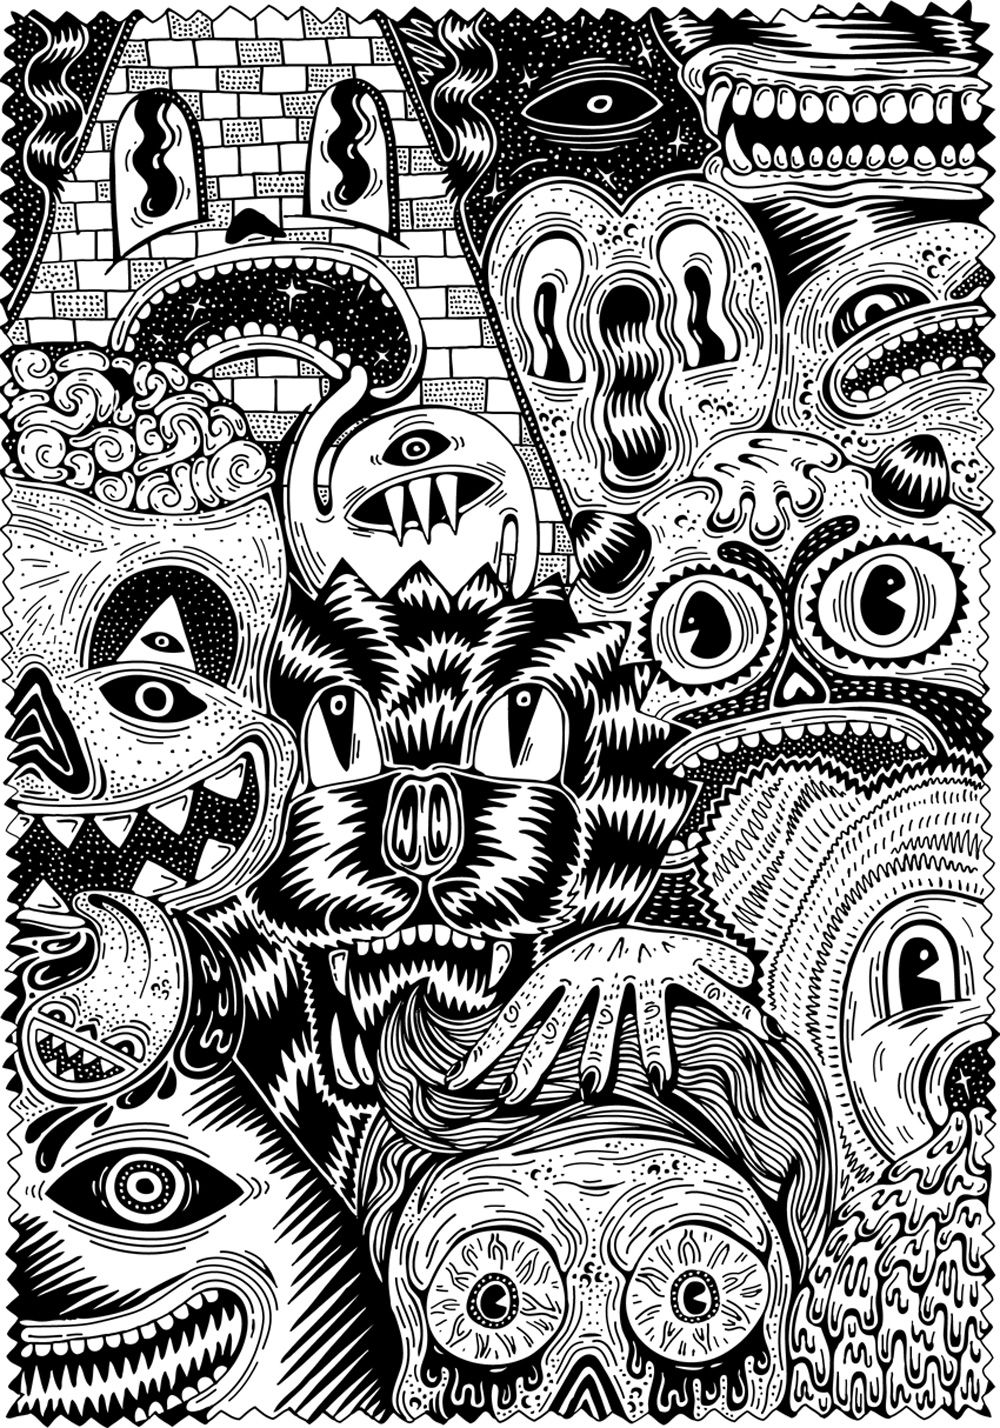 Printable Doodle Art Coloring Pages 2013 at 1000